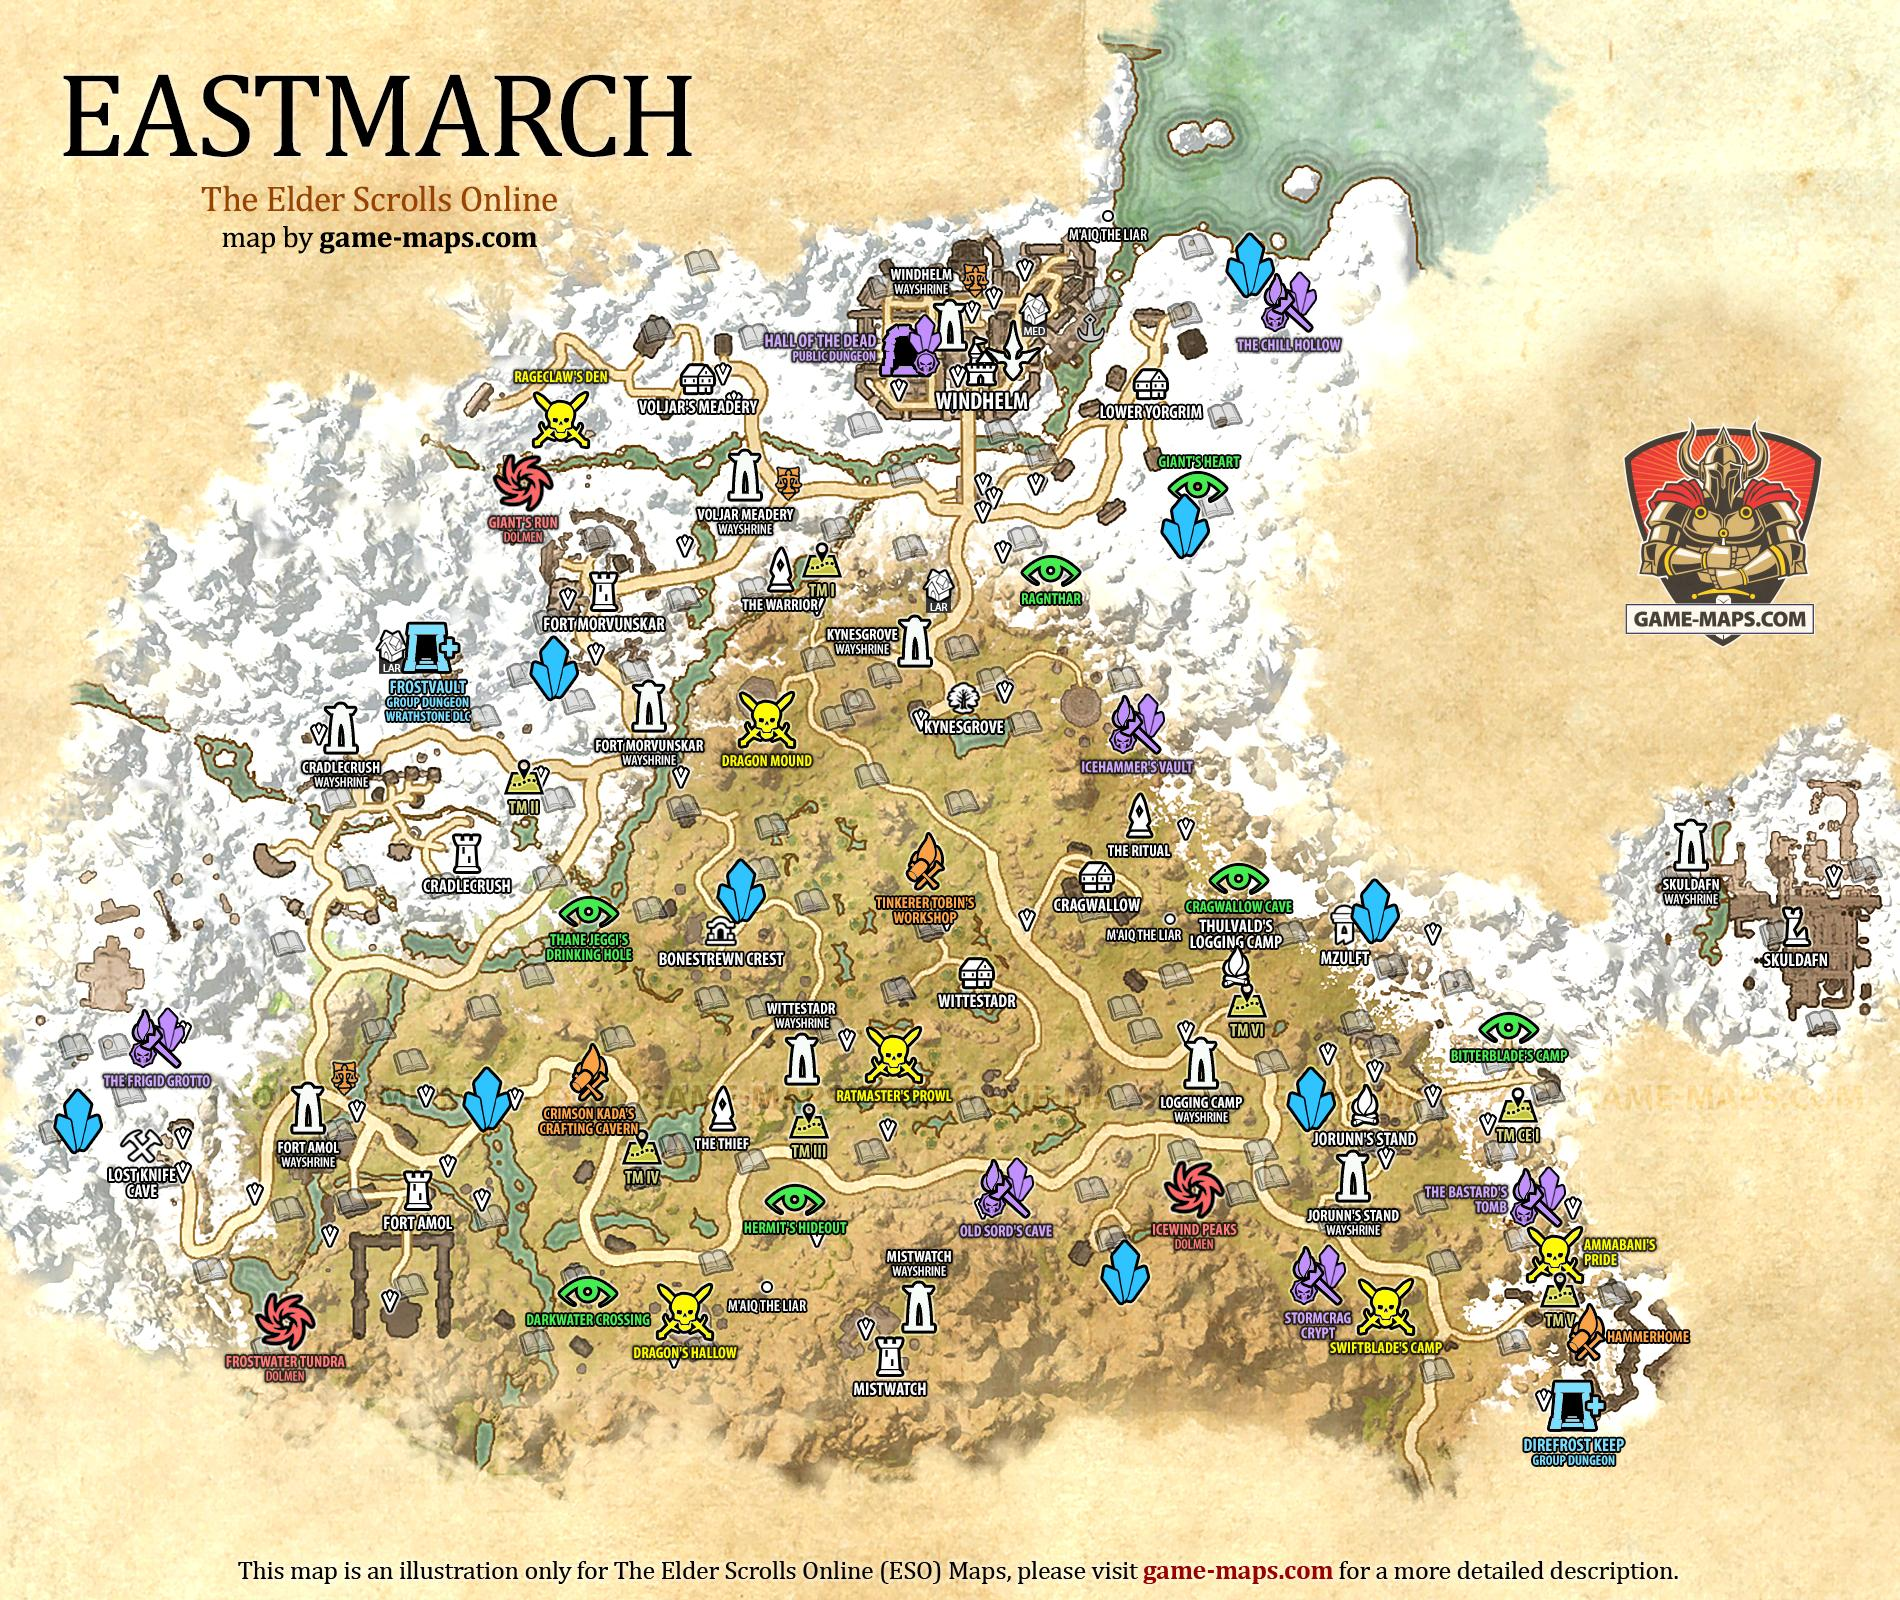 Eastmarch map the elder scrolls online game maps eastmarch zone map windhelm fort amol the elder scrolls online eso maps guides walkthroughs gumiabroncs Images